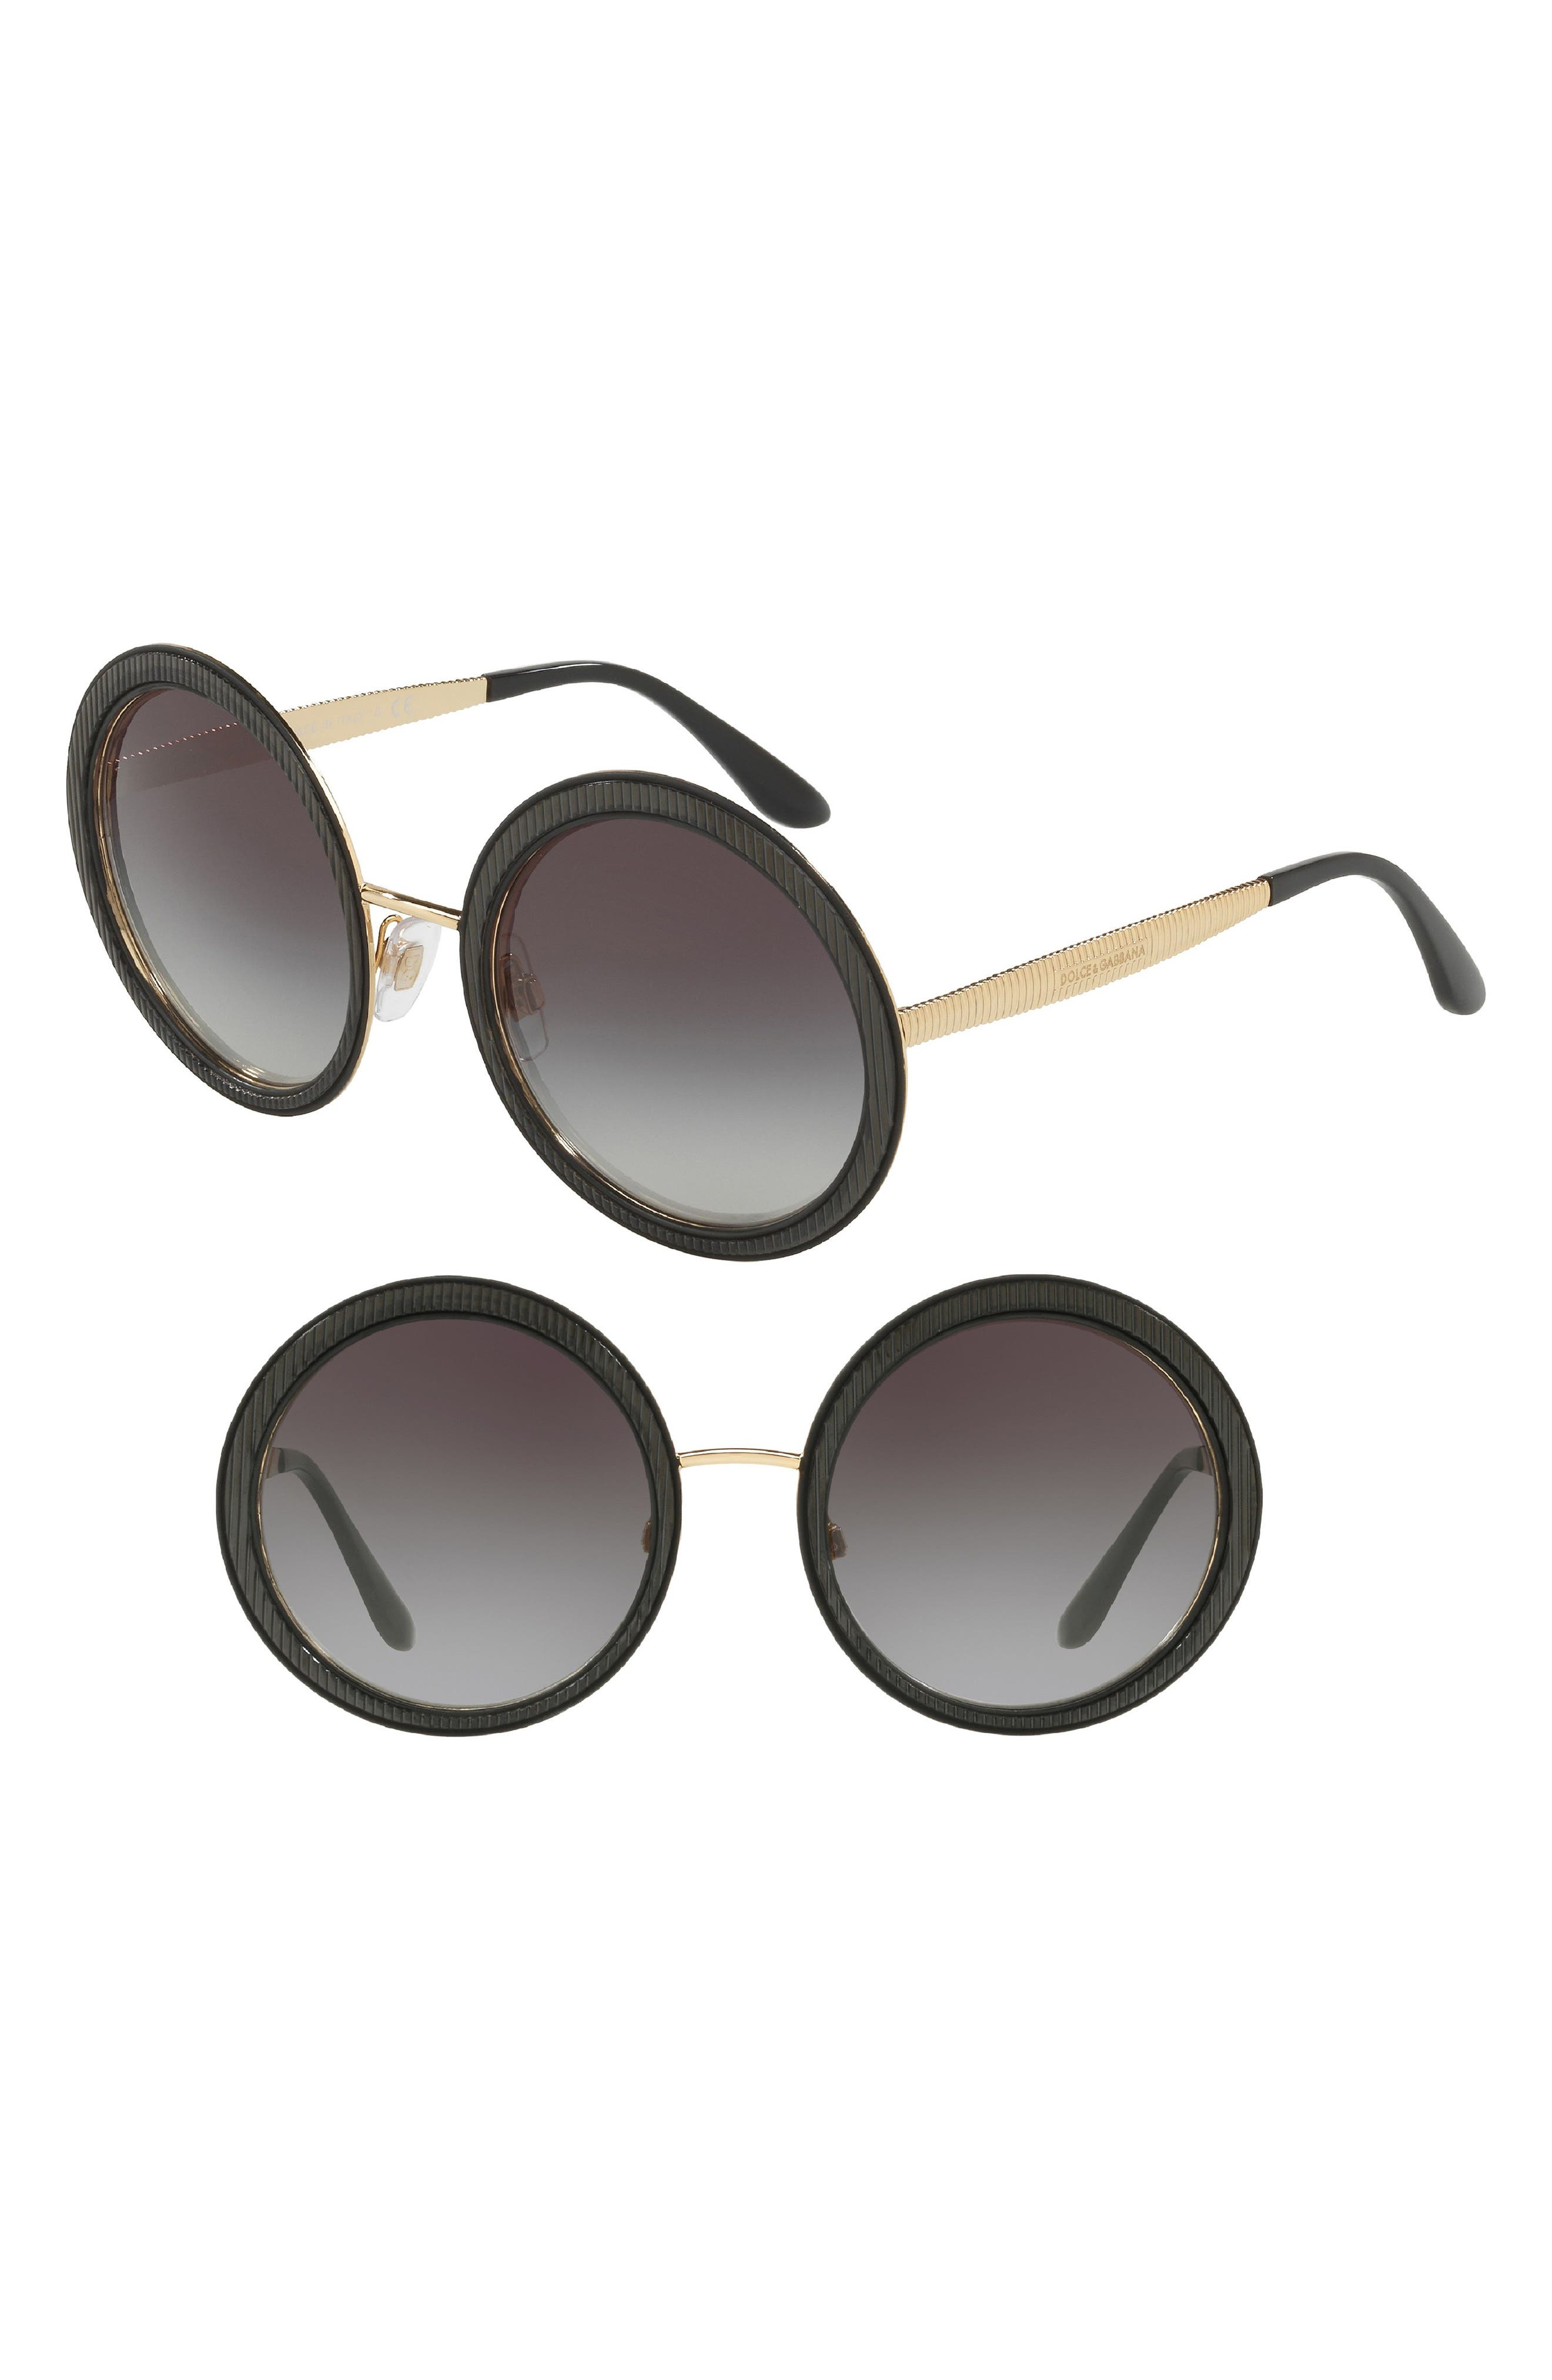 54mm Gradient Round Sunglasses,                             Main thumbnail 1, color,                             001